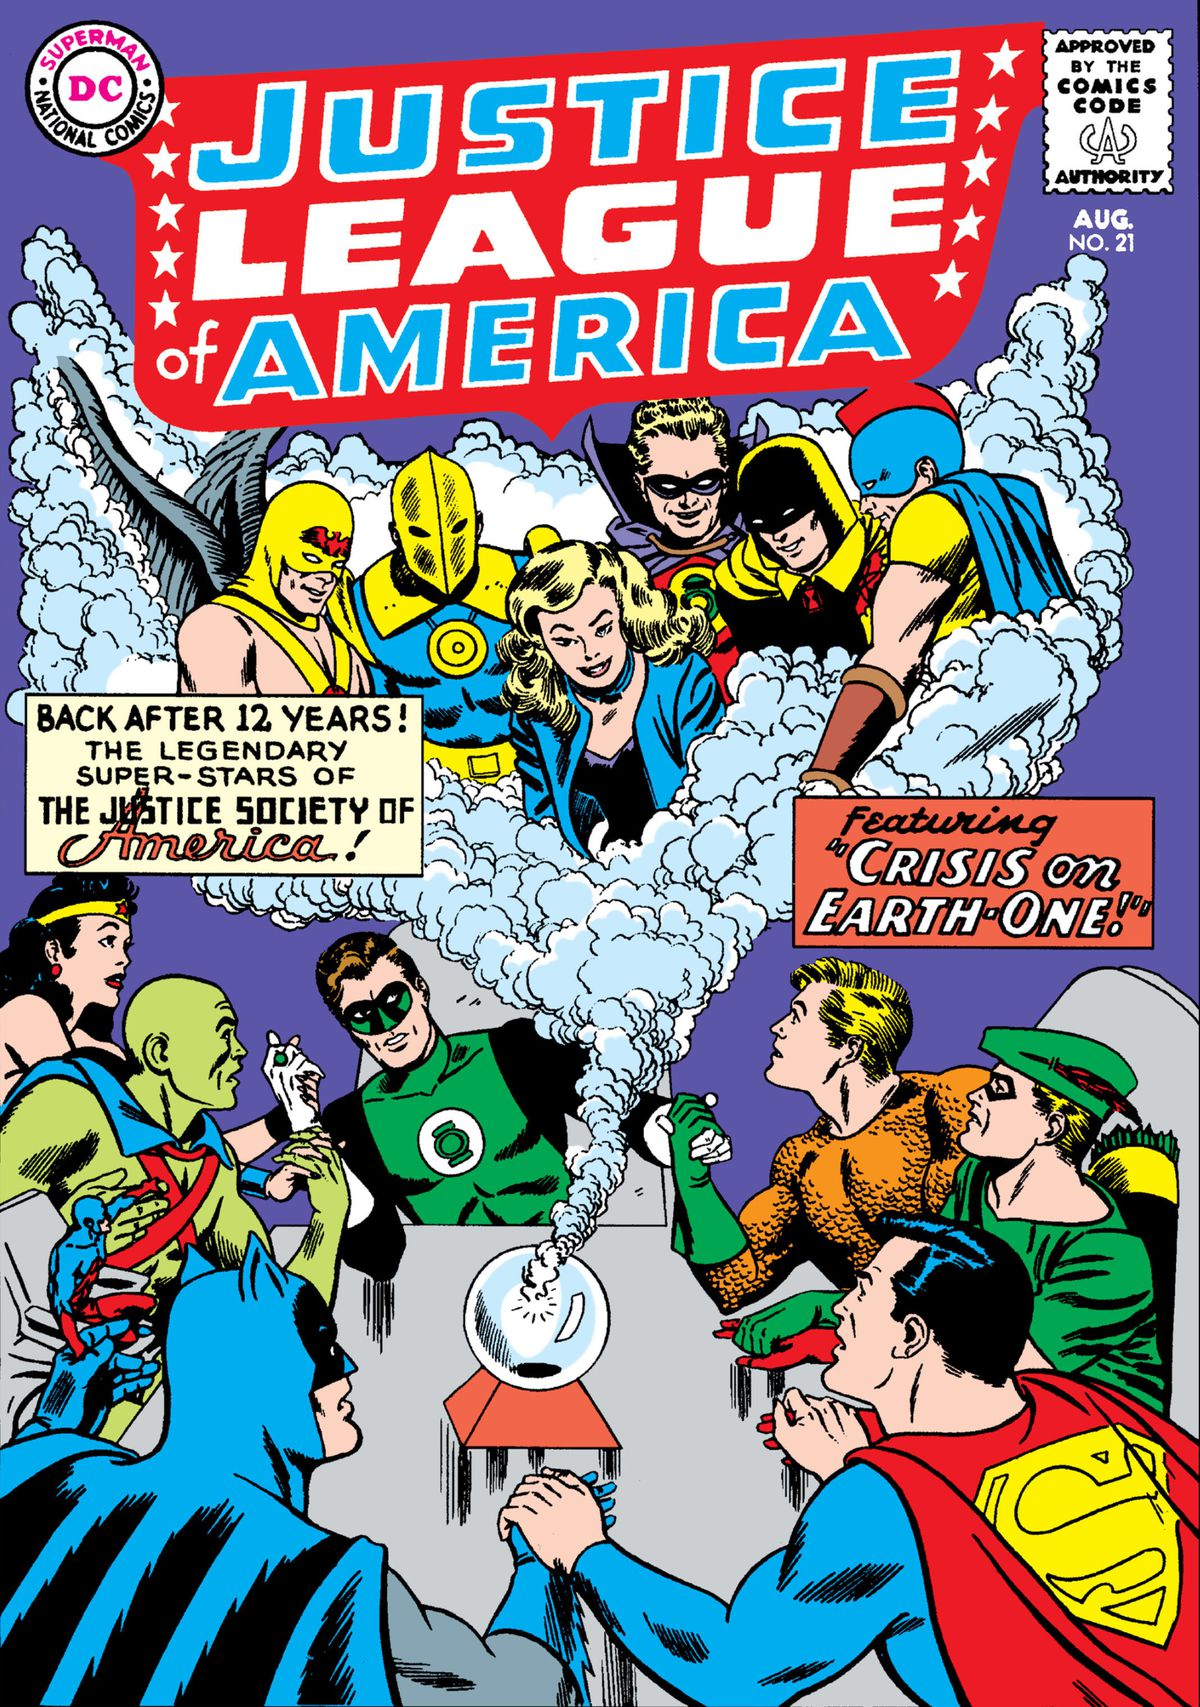 The Justice League have a seance to contact the Justice Society on the cover of Justice League of America #21, DC Comics (1963).